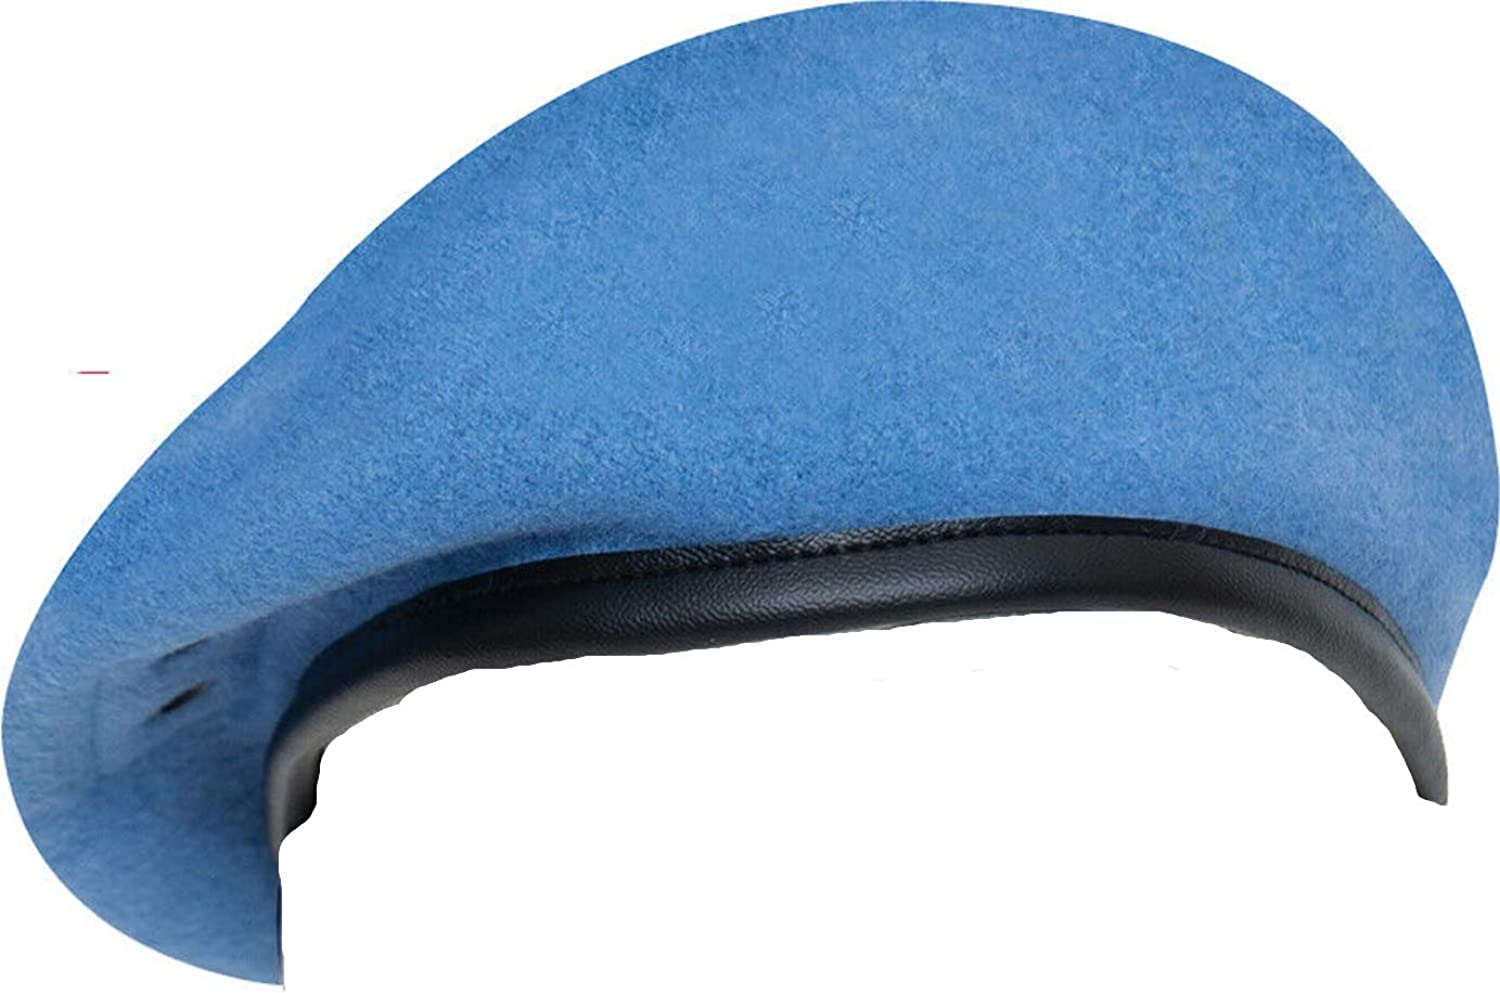 Classic Wool Military Beret - with Eyelets Army Uniform Warm Winter Hat Fashion ~ Light Blue ~